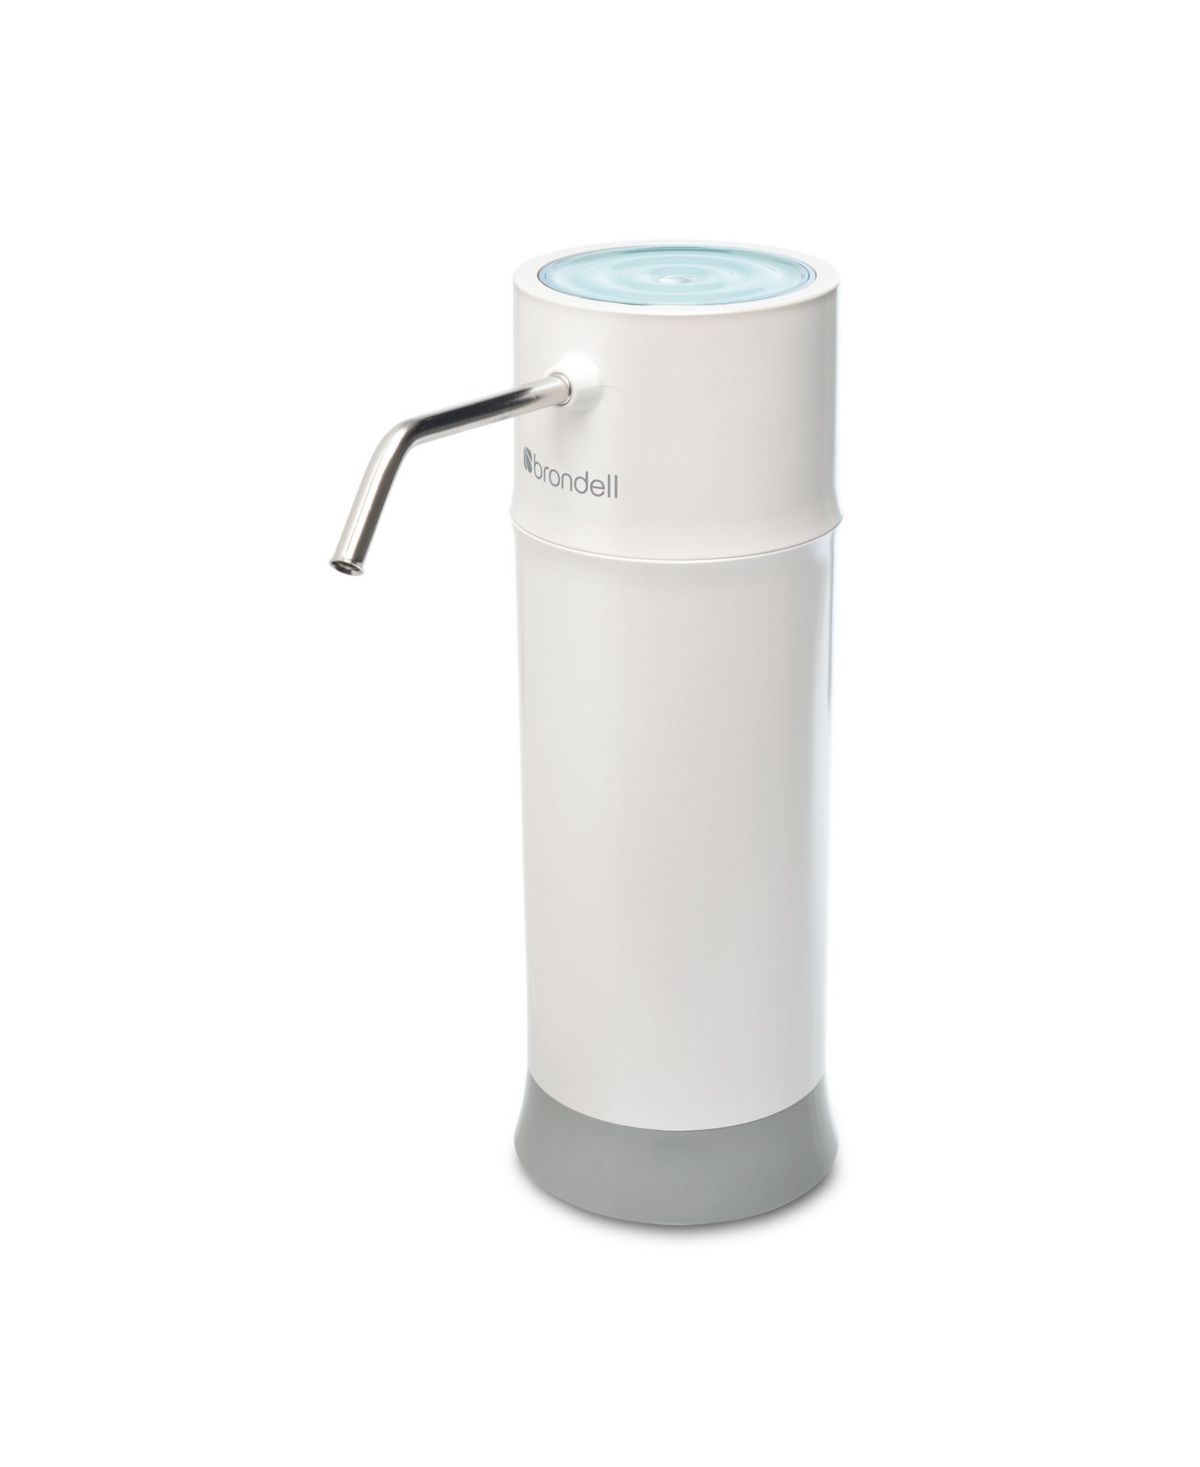 Brondell H2o Pearl Countertop Water Filter System White